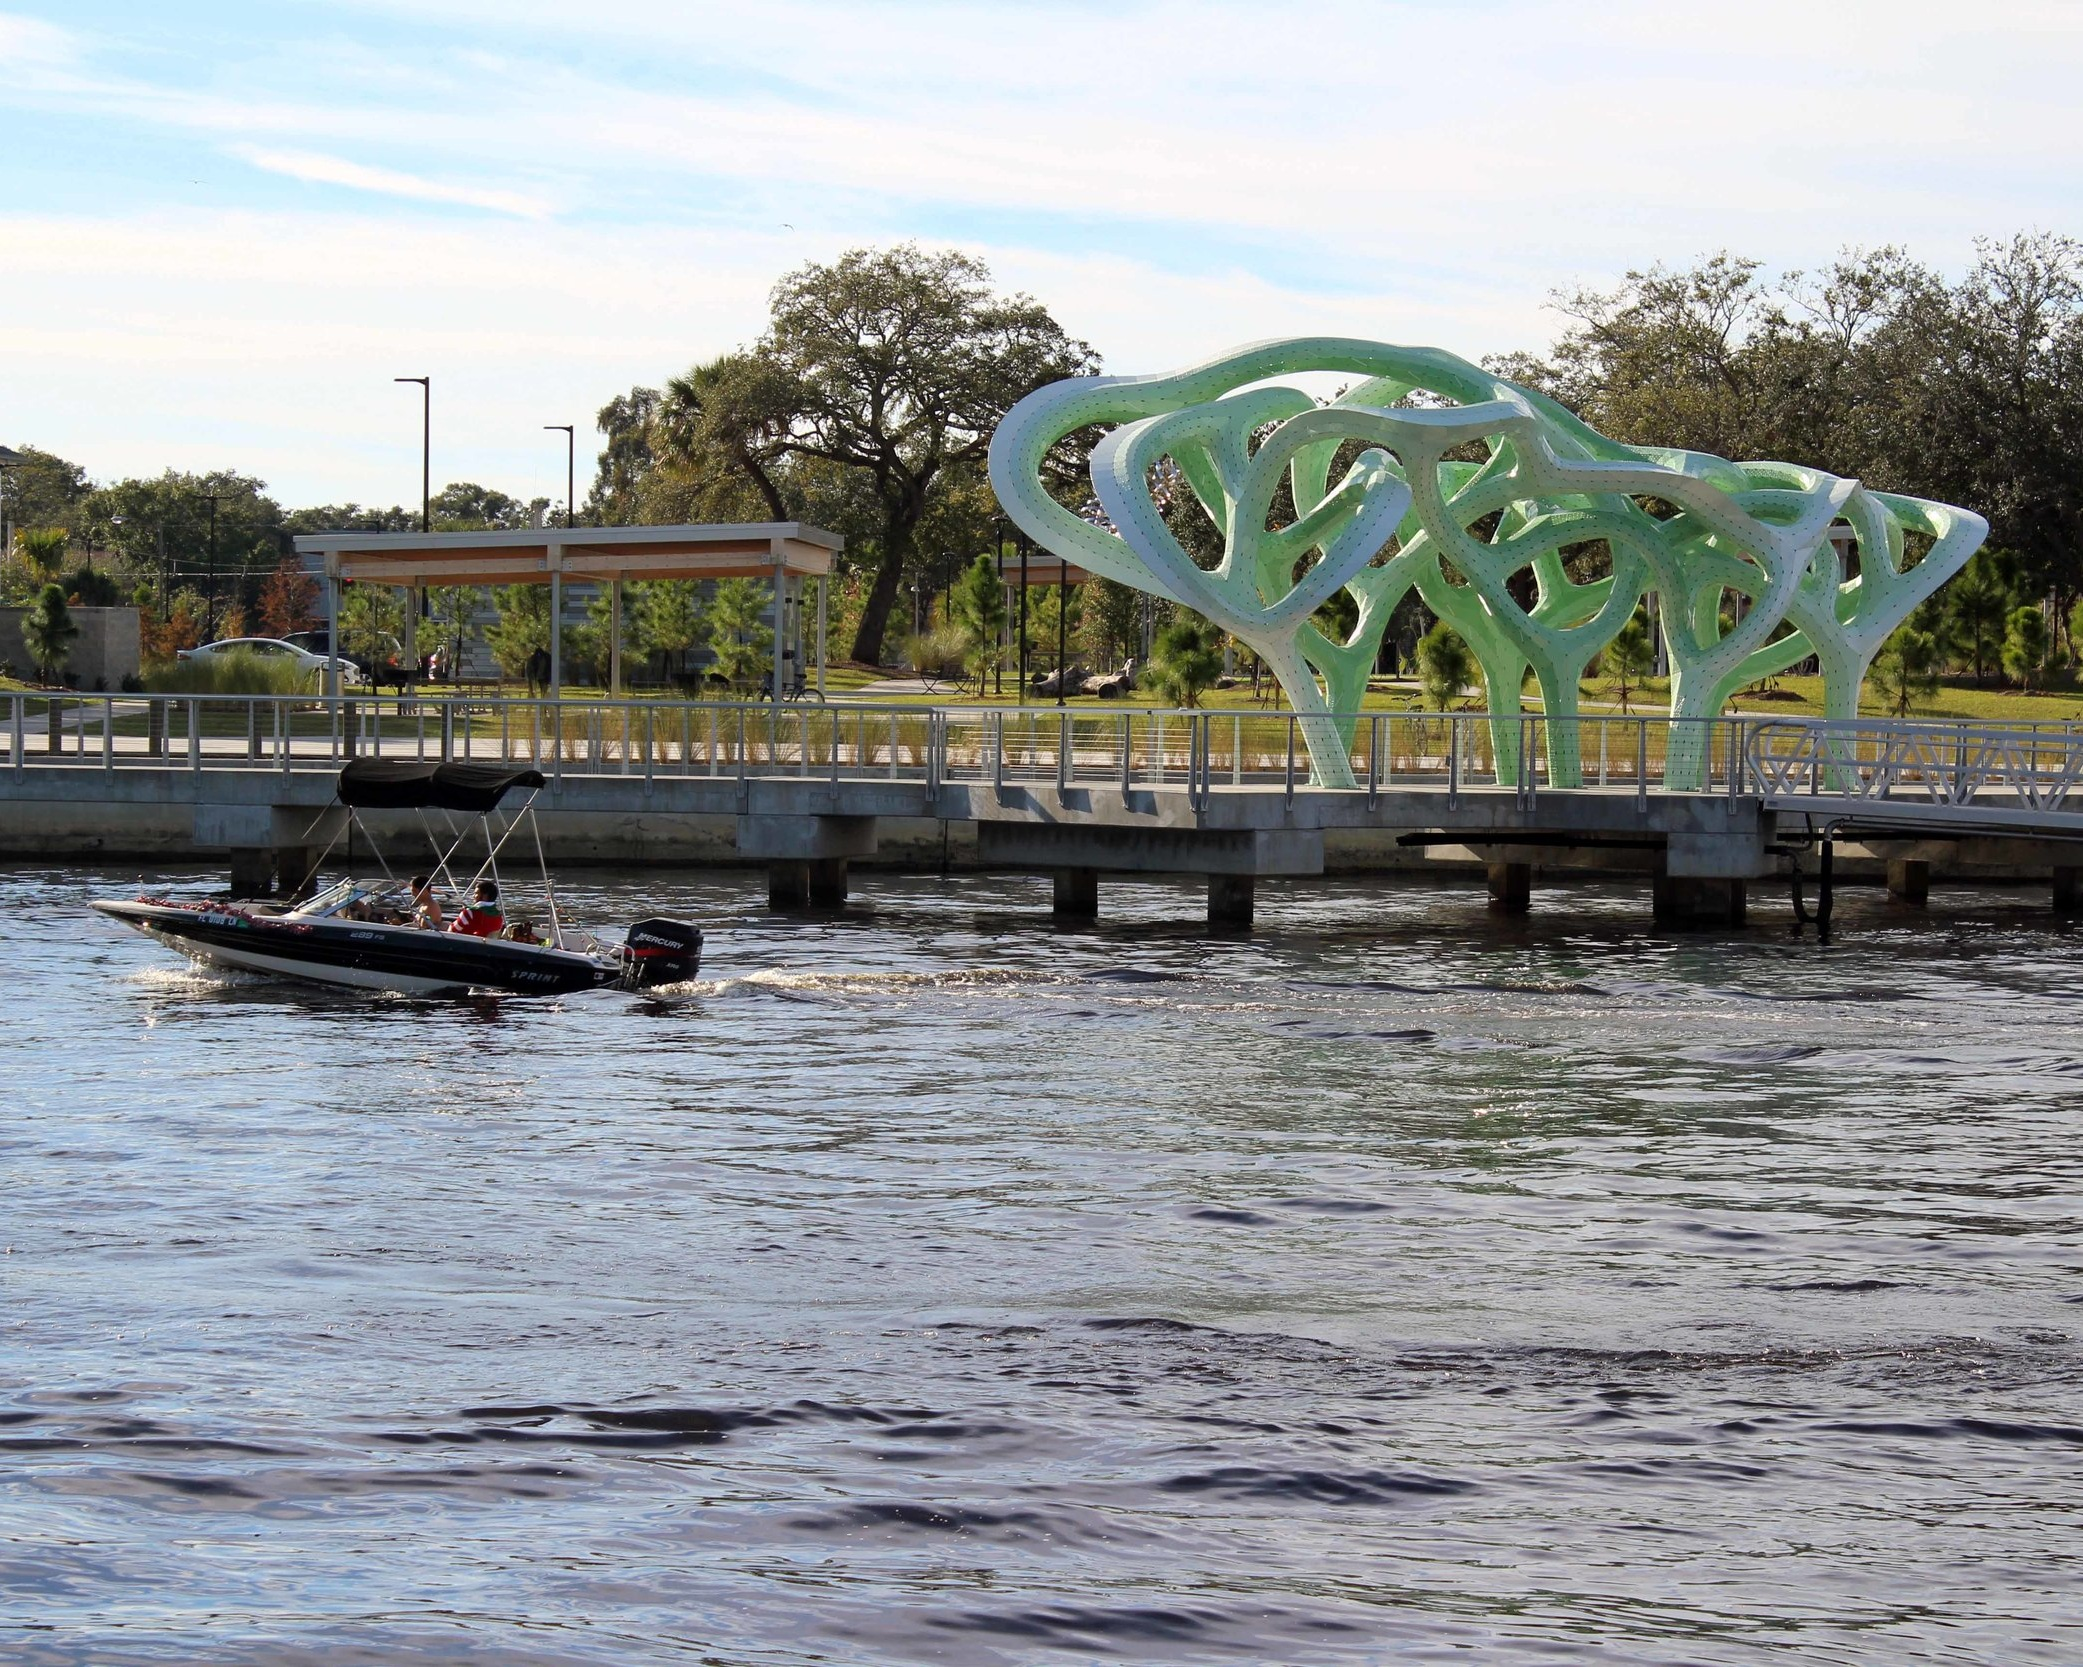 Outdoor sculpture just outside the Straz Centre of Performing Arts, seen from Tampa's Riverwalk